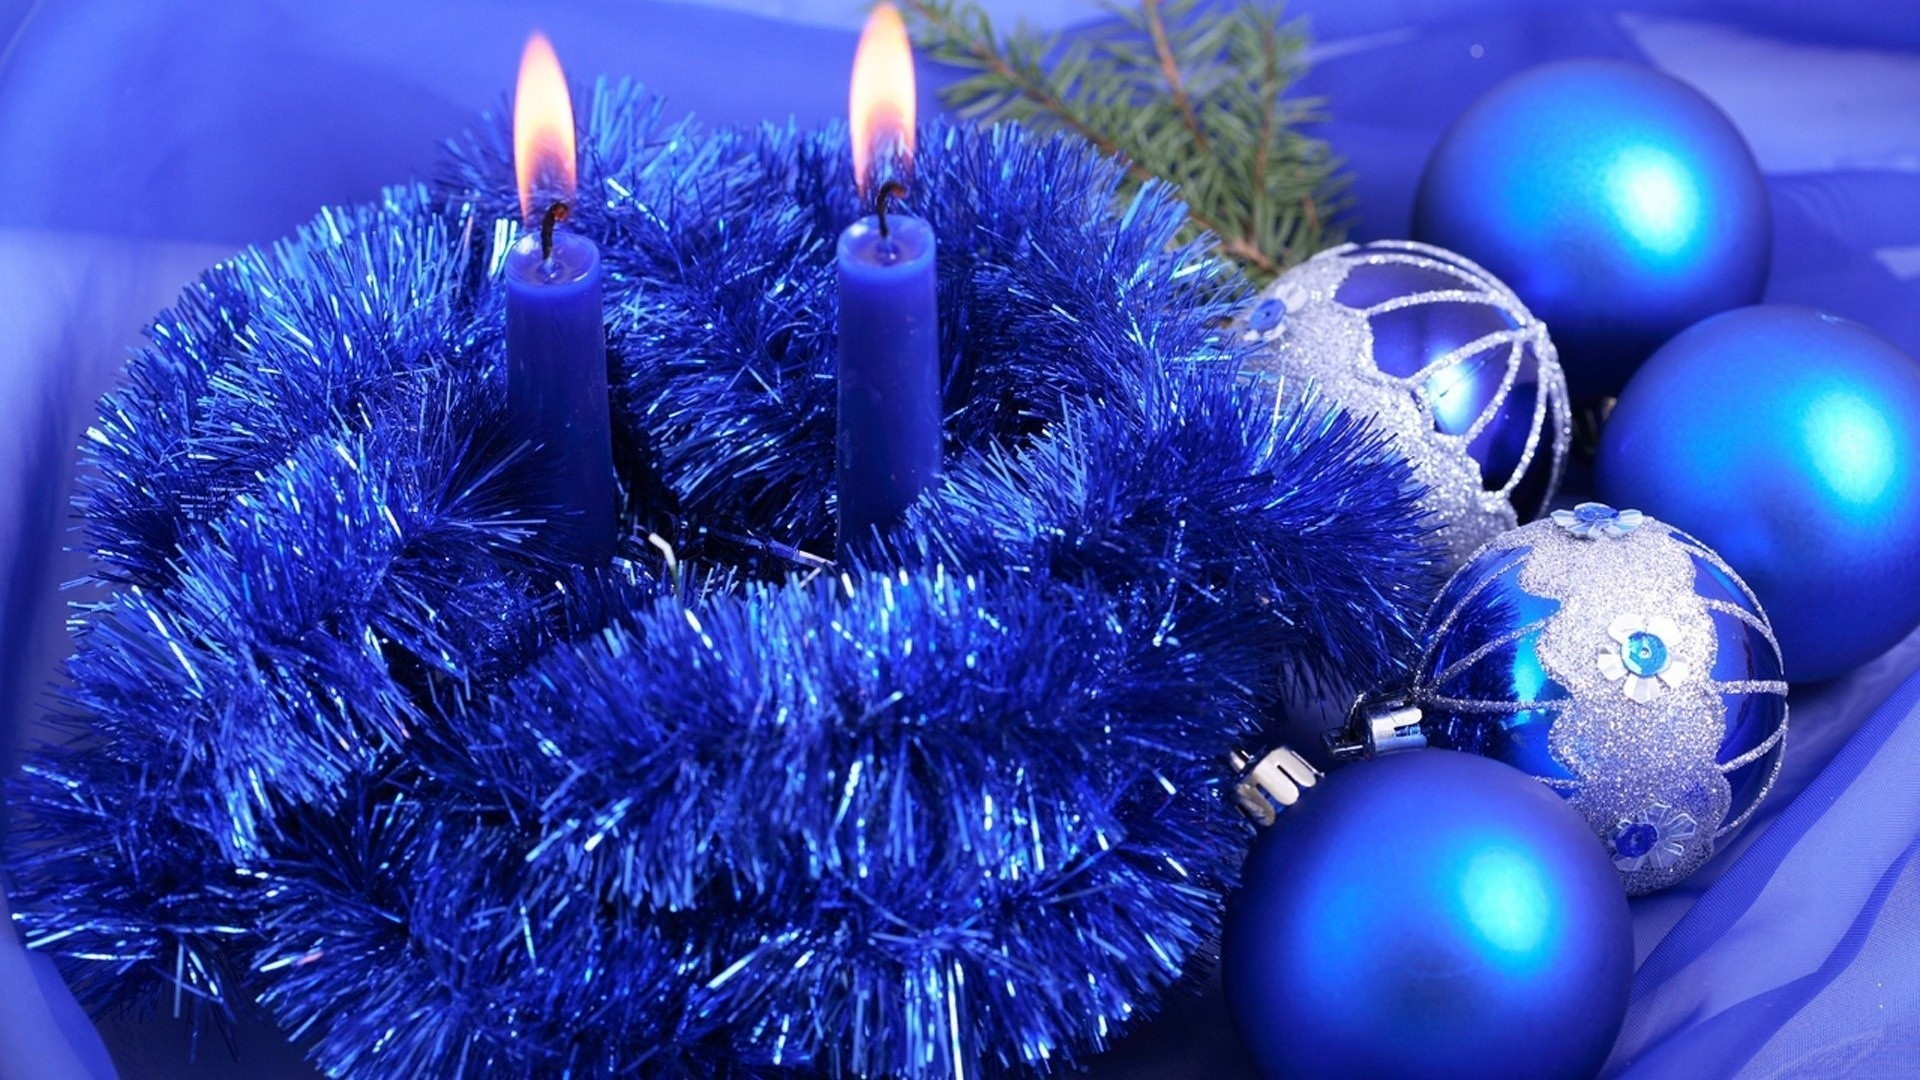 Blue Christmas Candle And Balls Decoration photos of Free Christmas  Wallpapers